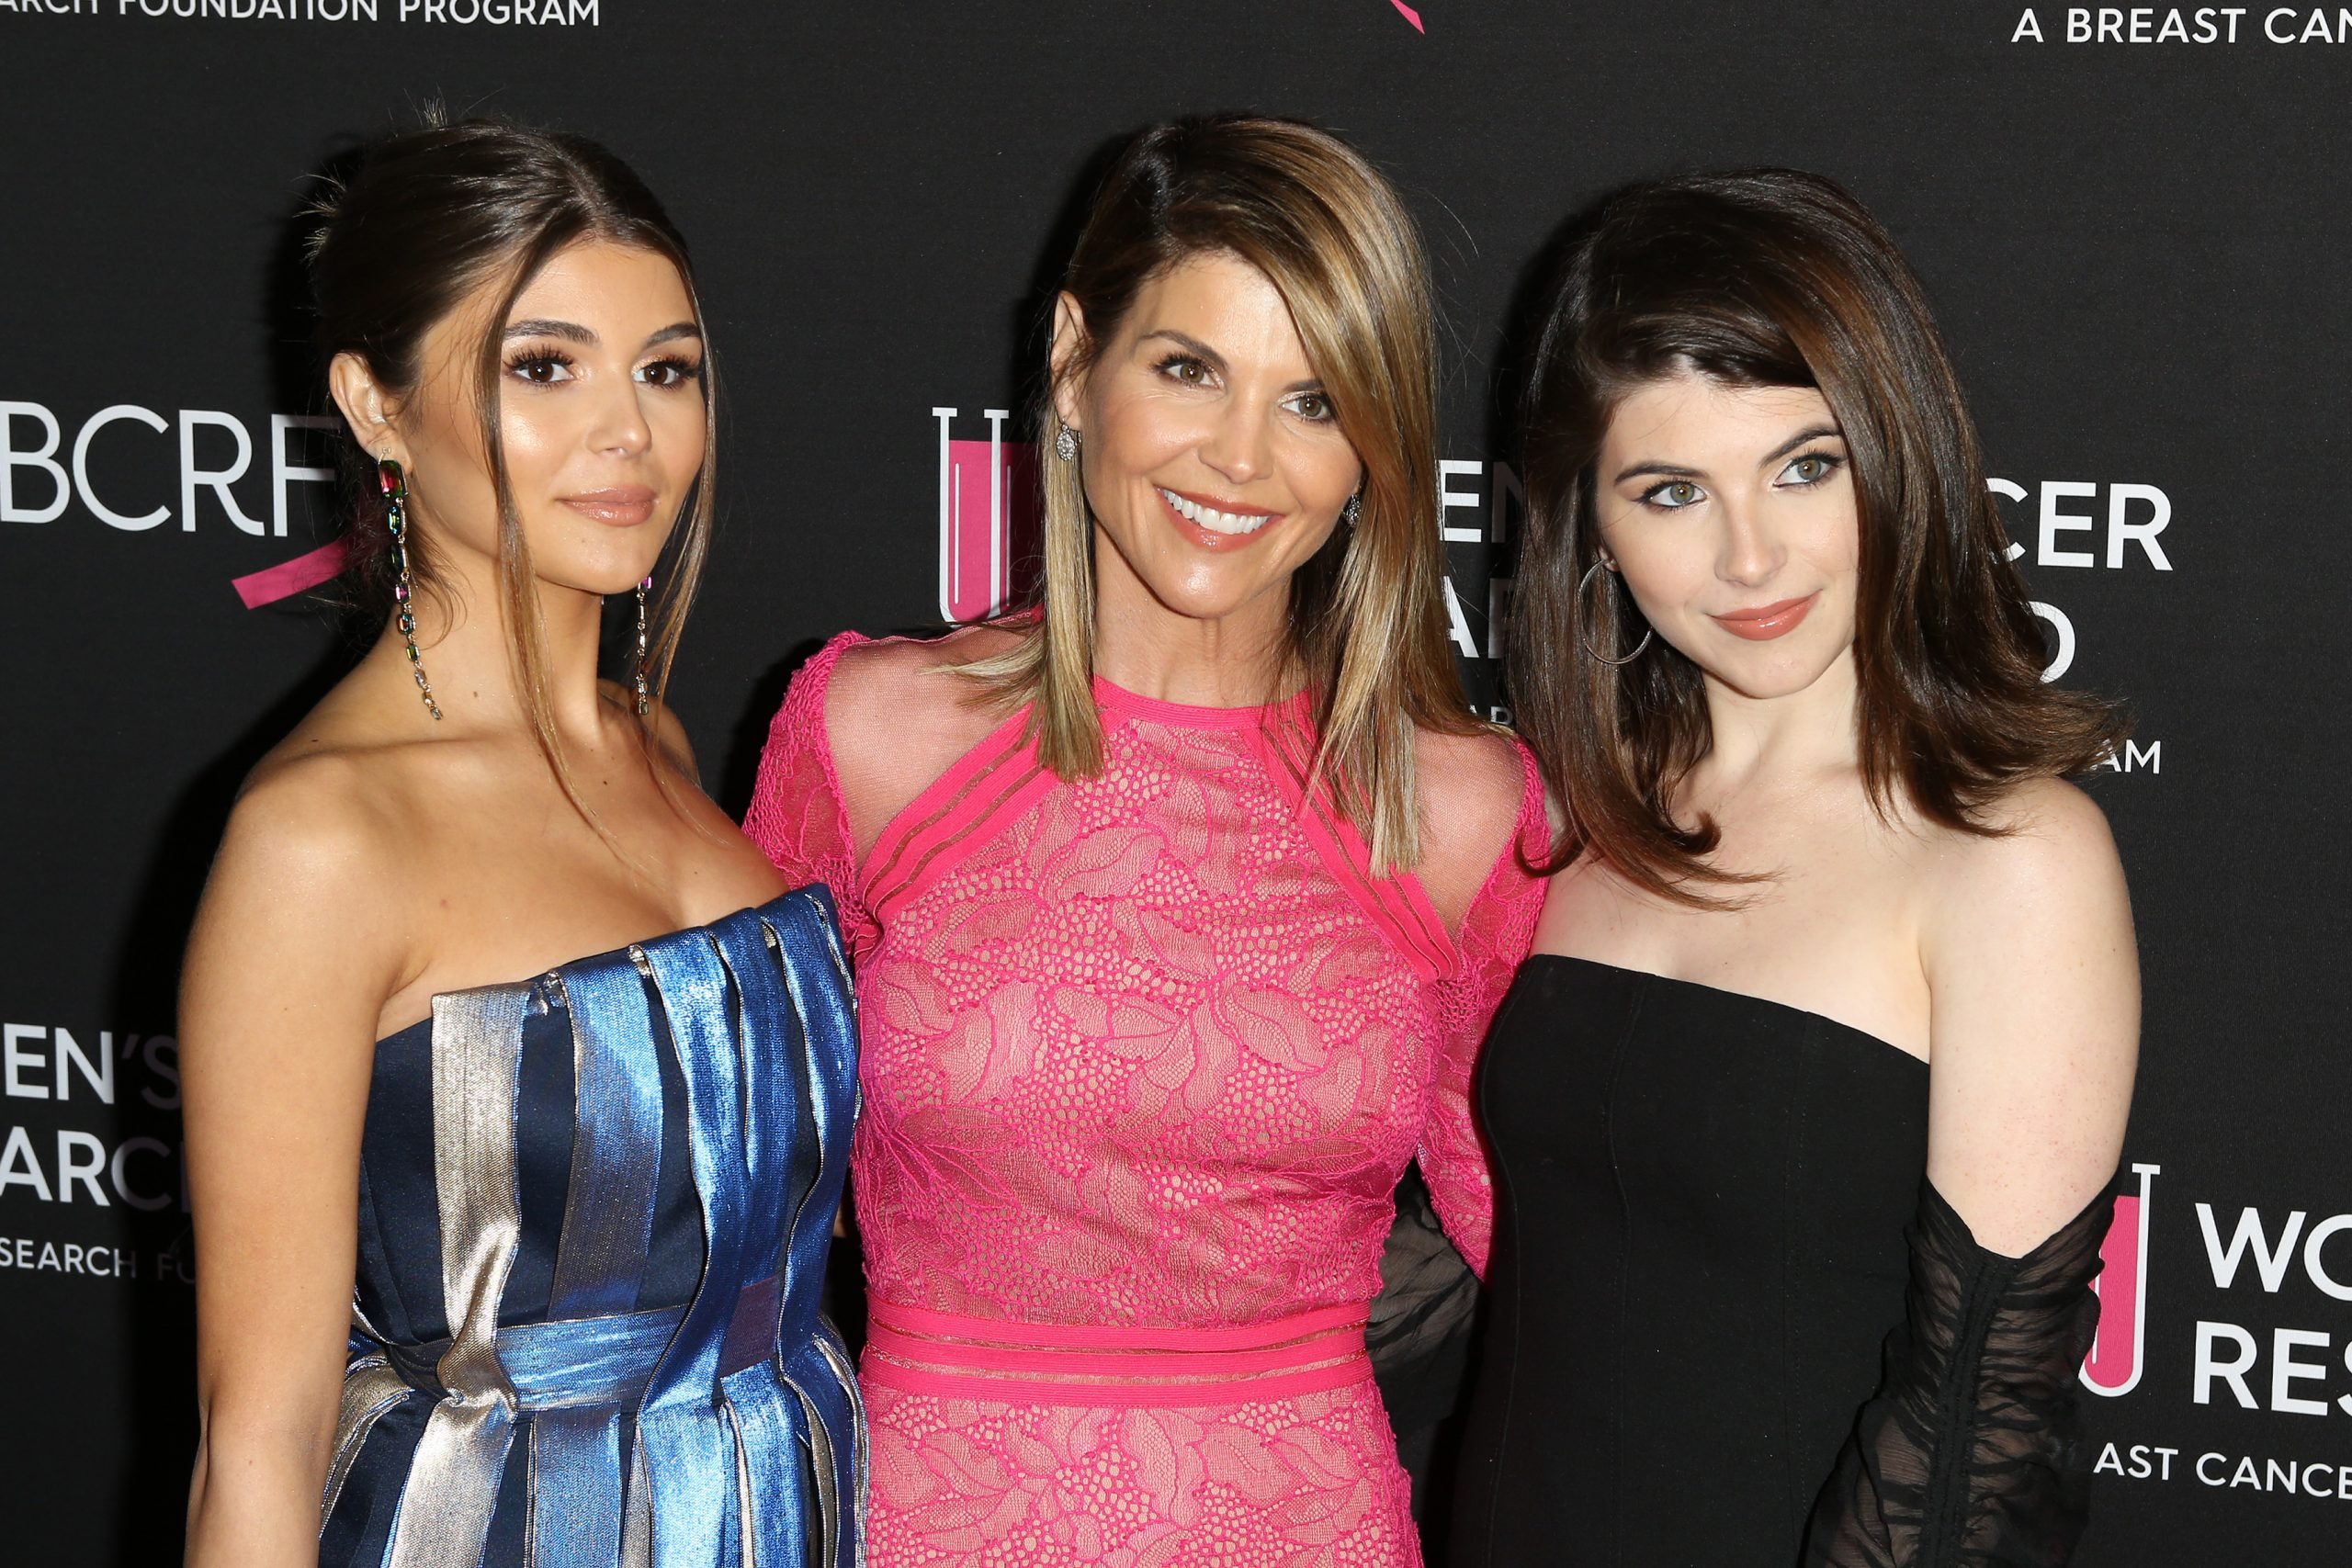 Lori Loughlin and Mossimo Giannulli Agree to Plead Guilty in College Bribery Case